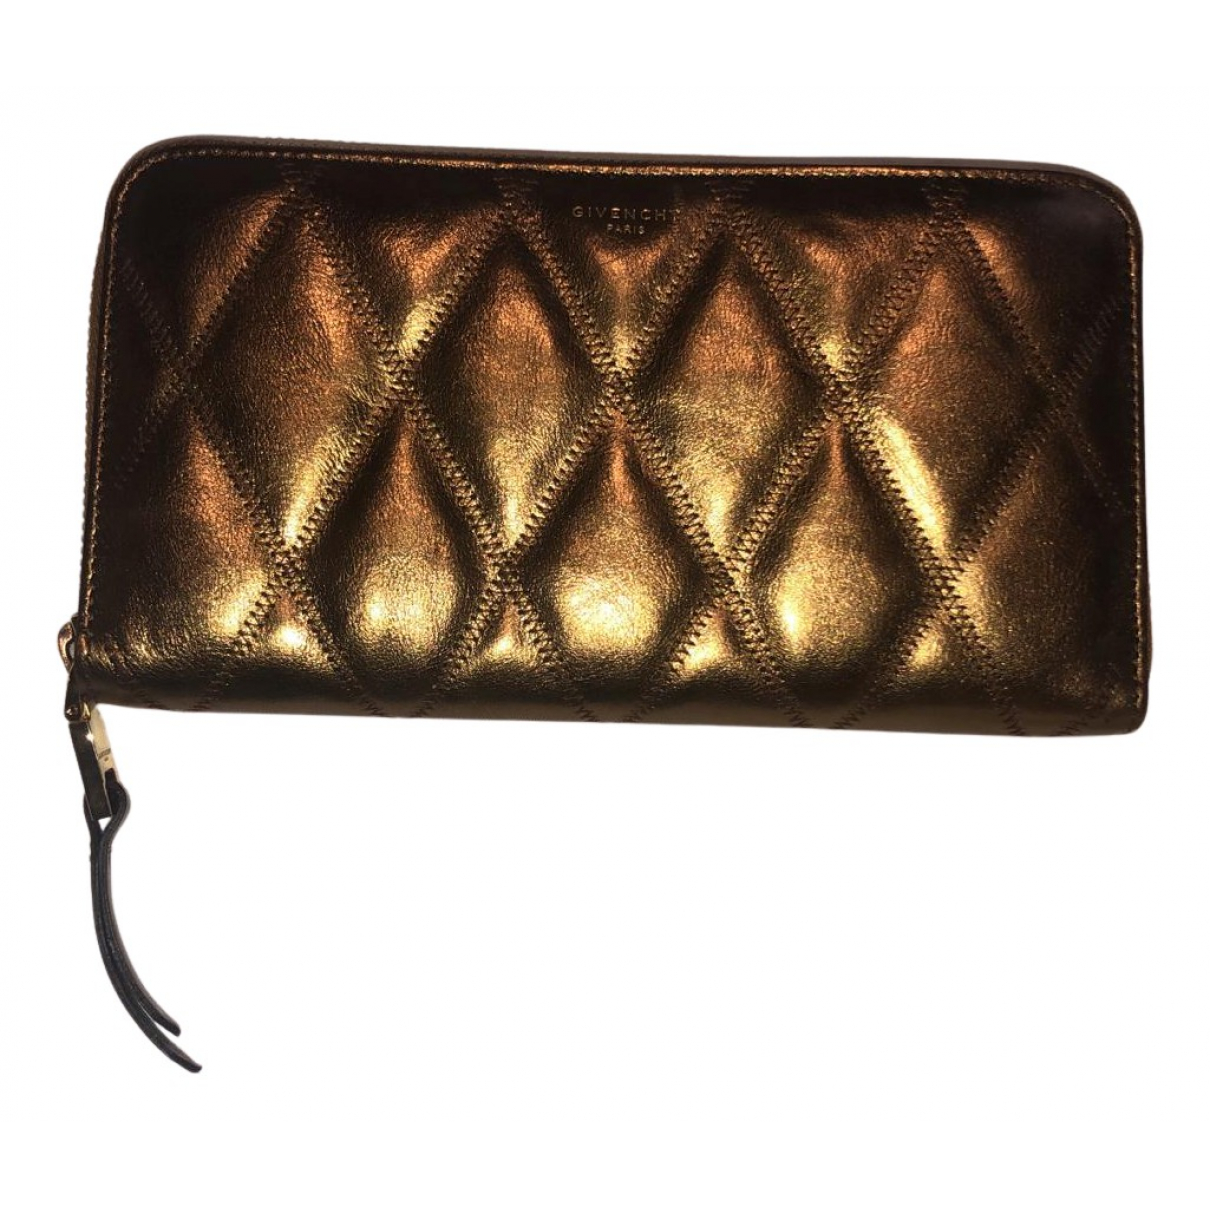 Givenchy N Metallic Leather wallet for Women N